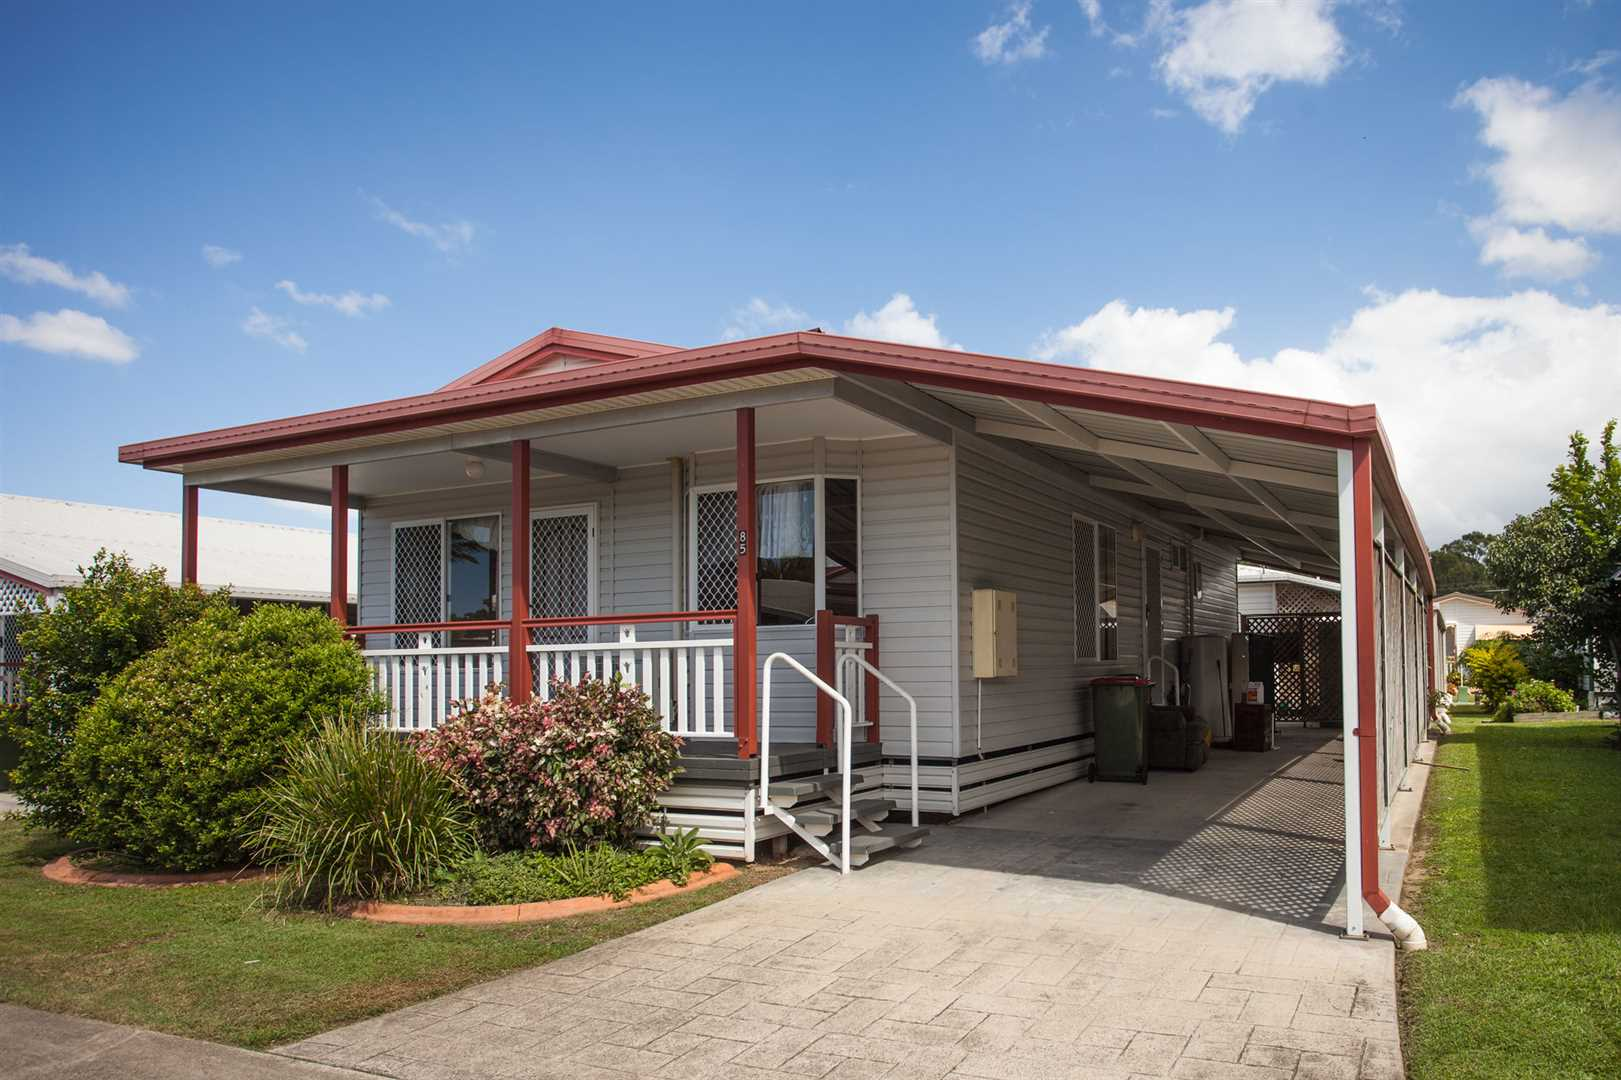 Fitzgibbon - Three Bedrooms At This Price!